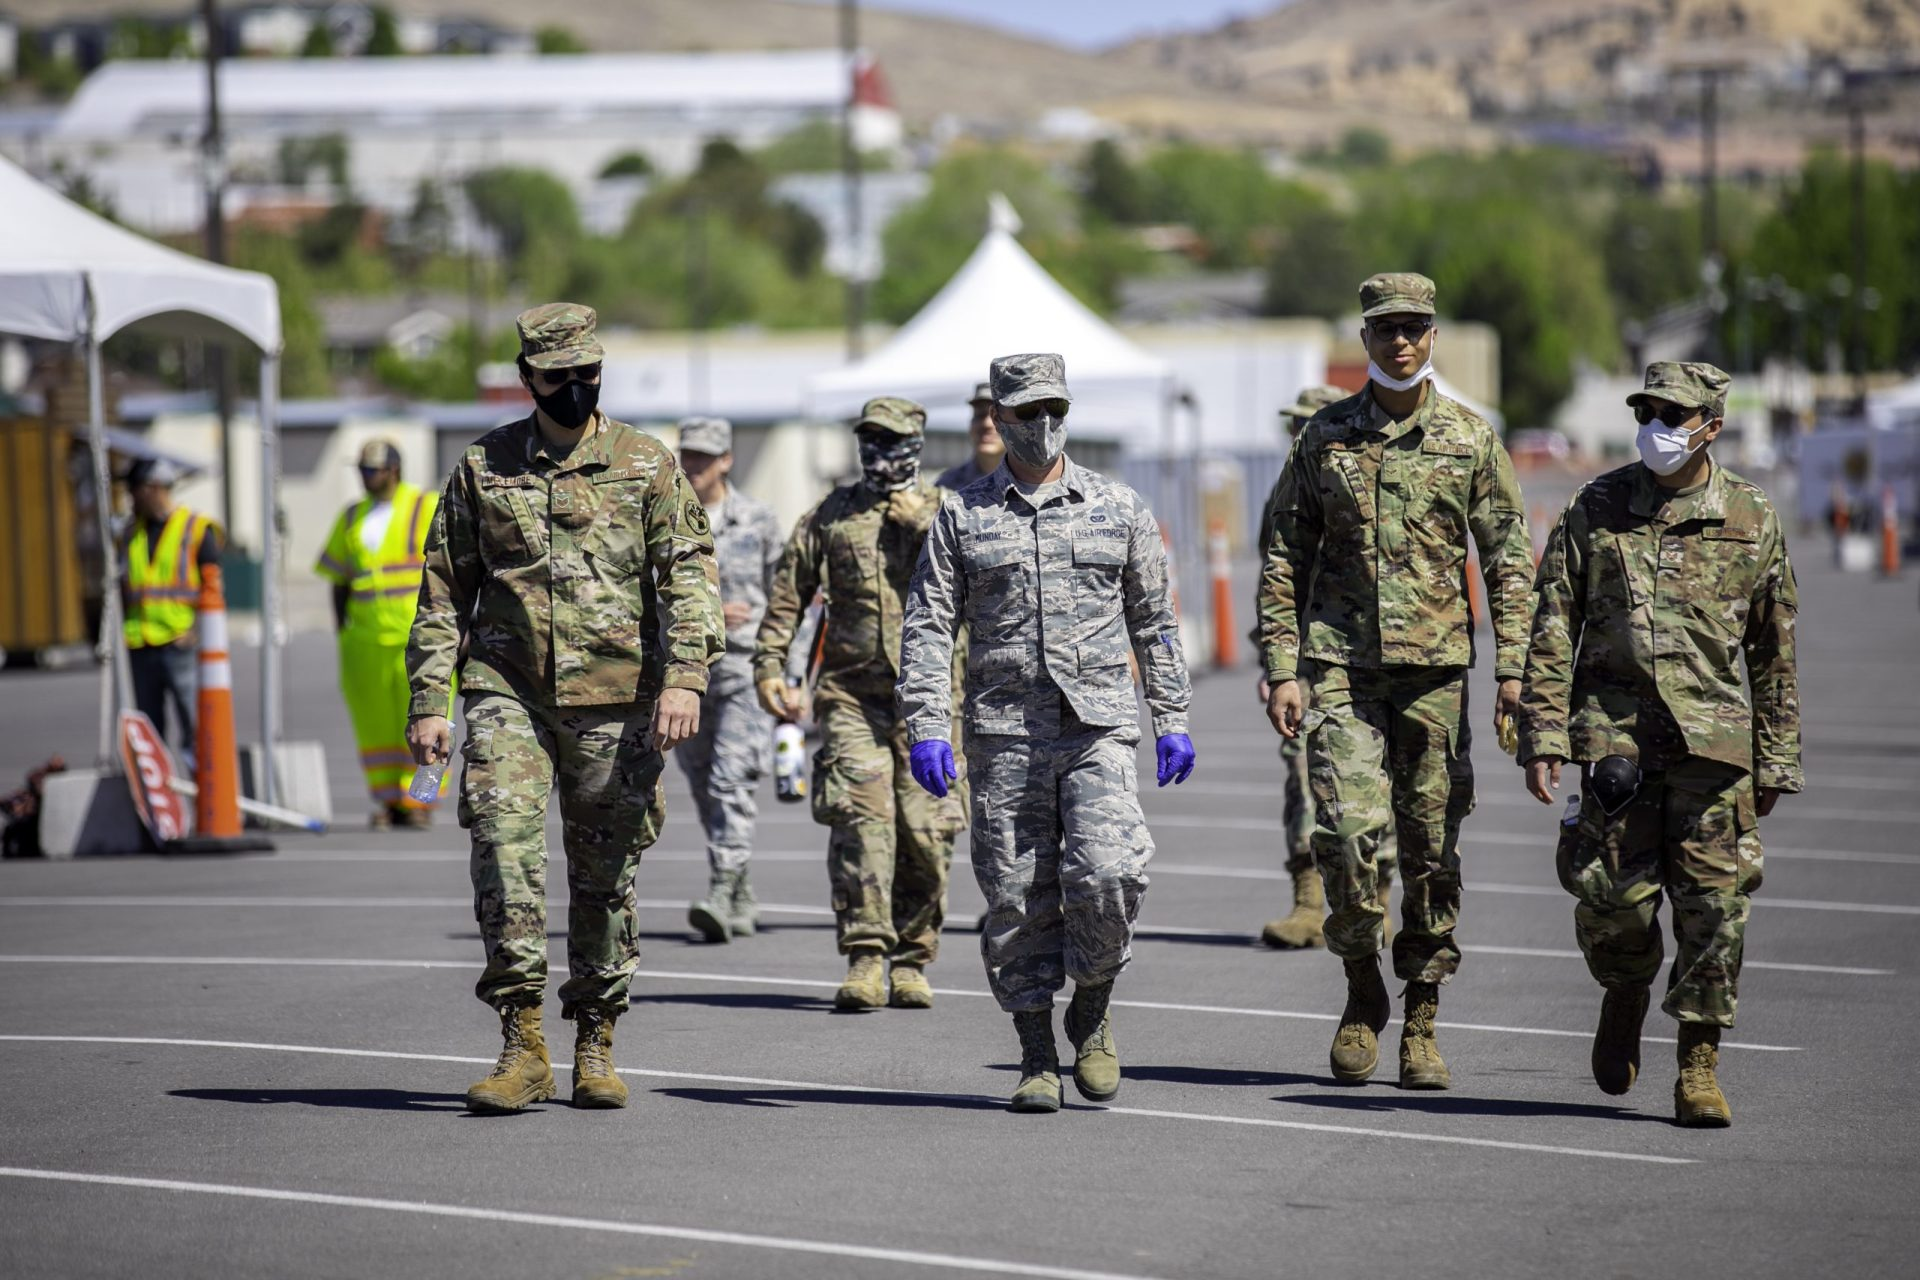 Nevada's National Guard assists at COVID-19 test locations in Nevada, directing traffic and contact tracing.